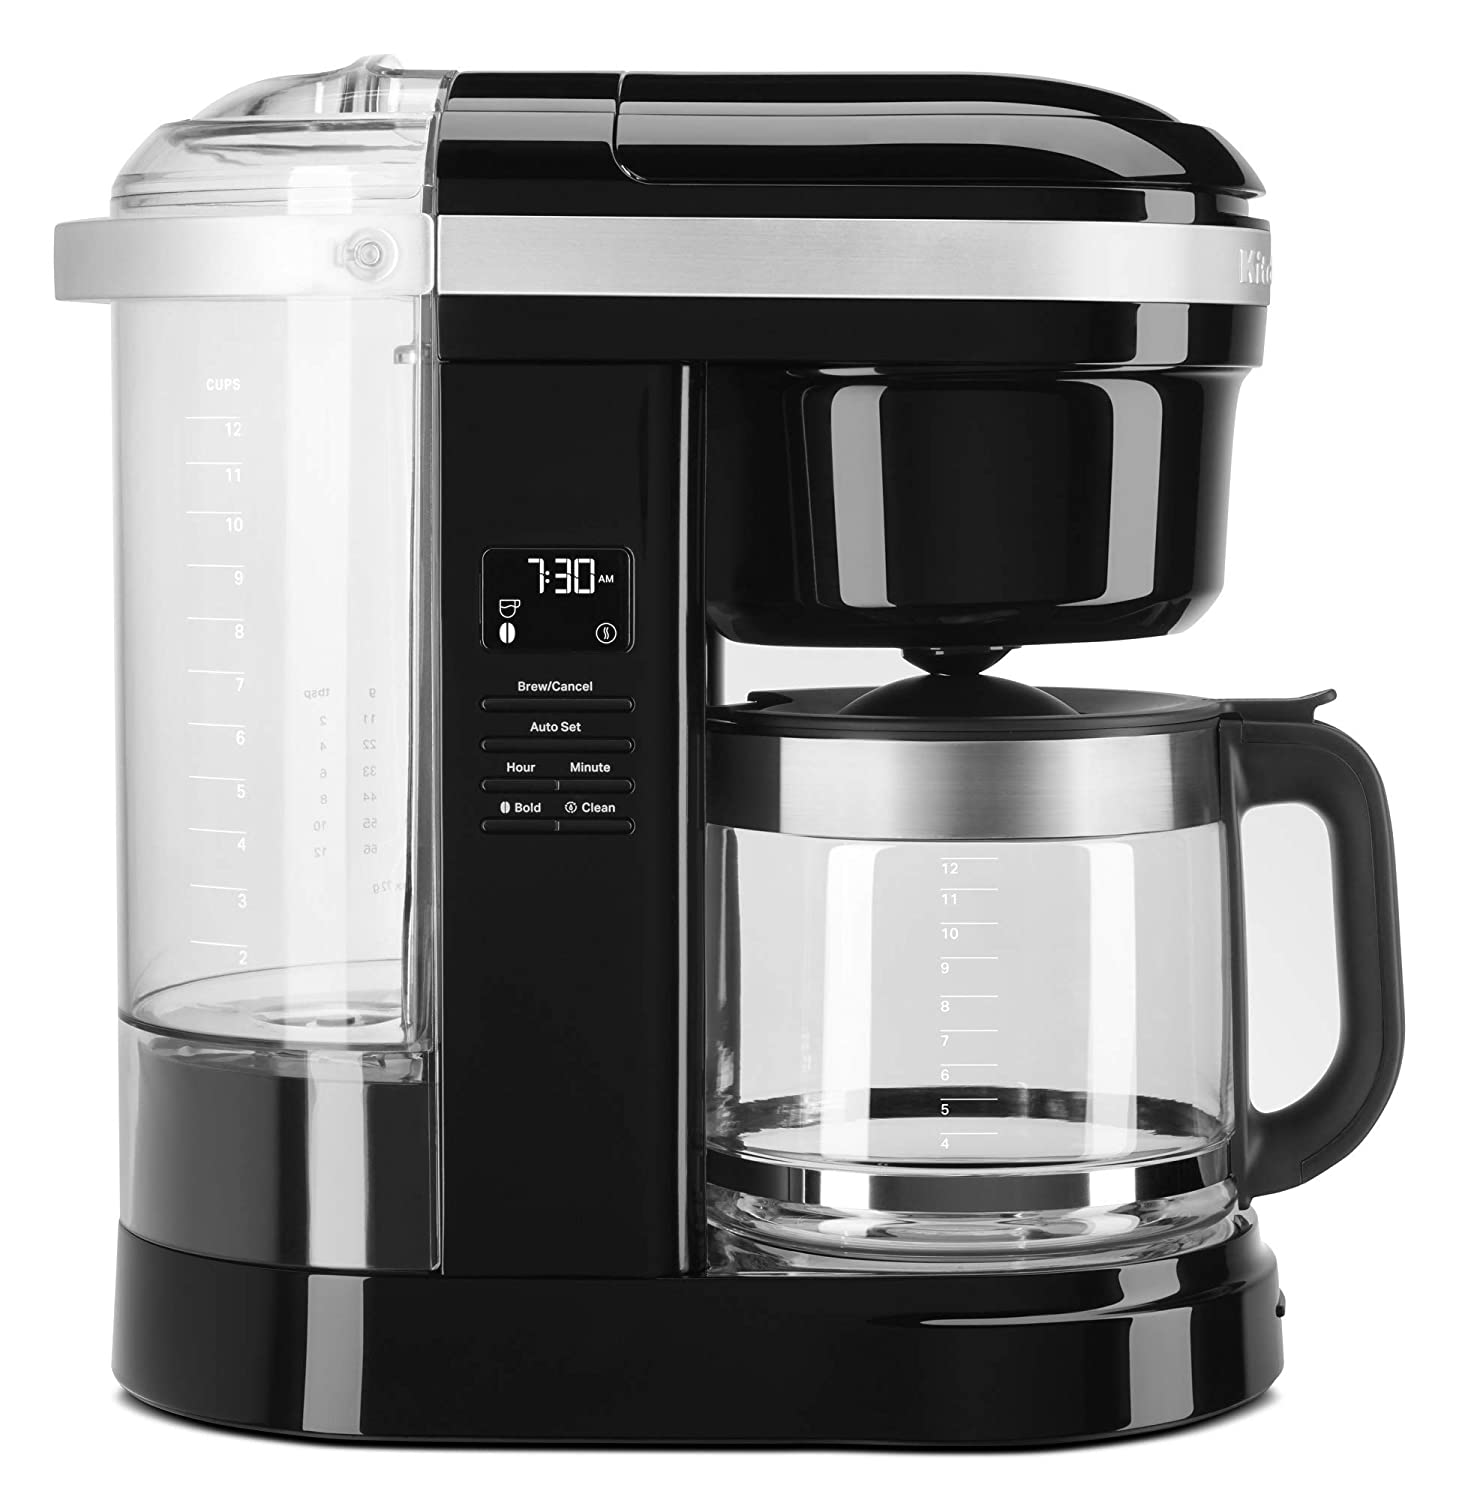 Amazon.com: KitchenAid KCM1208OB Drip Coffee Maker, 12 Cup ...